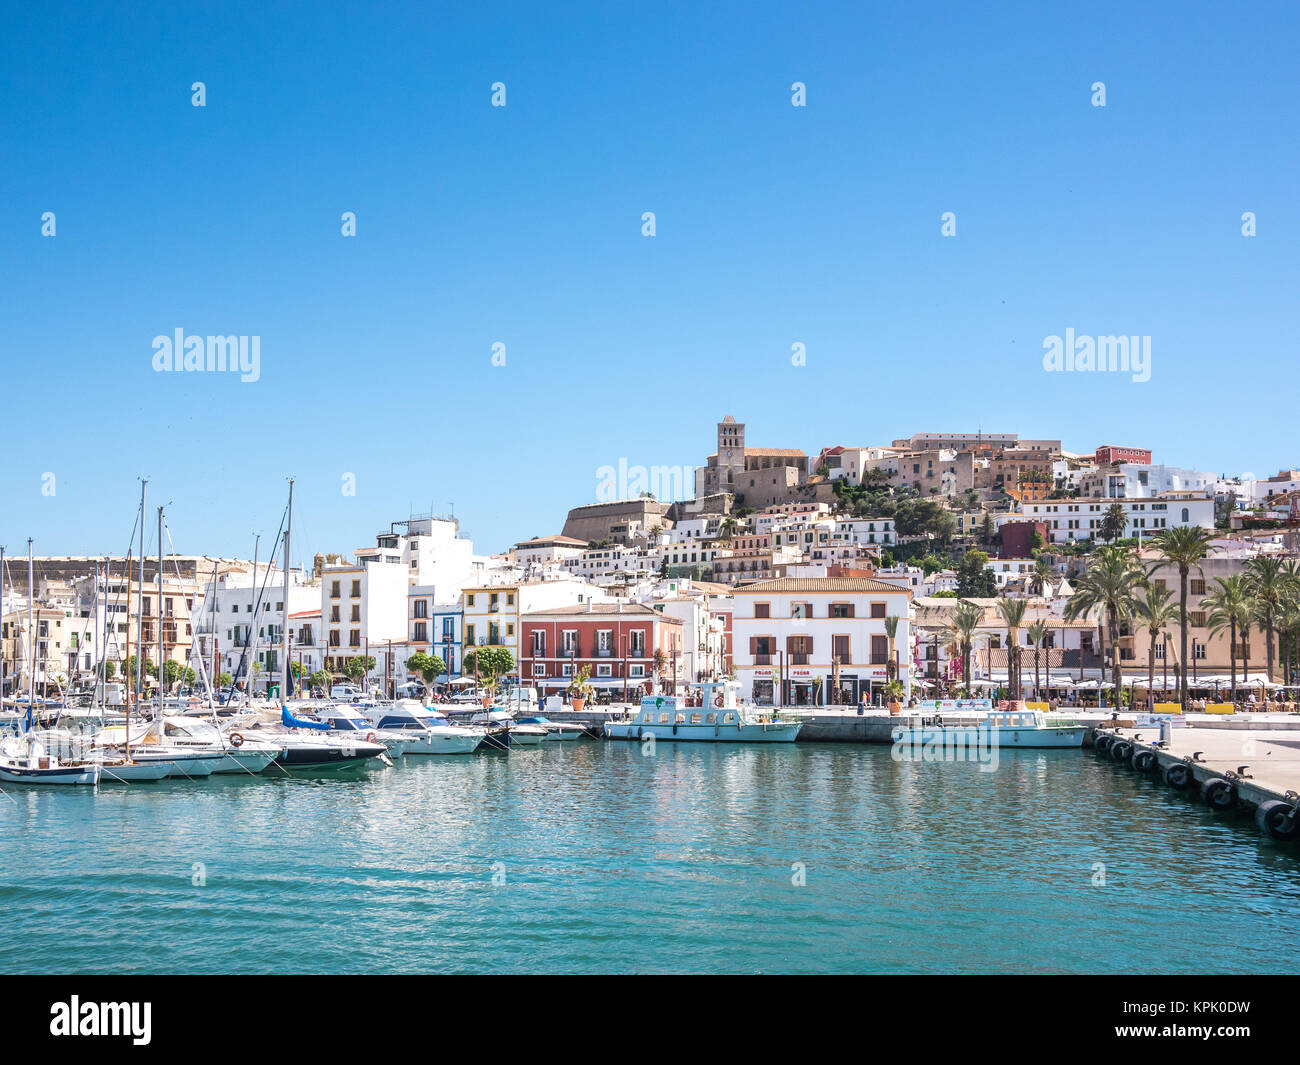 IBIZA, SPAIN - MAY 28, 2015. The distinctive Ibiza architecture reflects a mediterranean style. View of the old - Stock Image